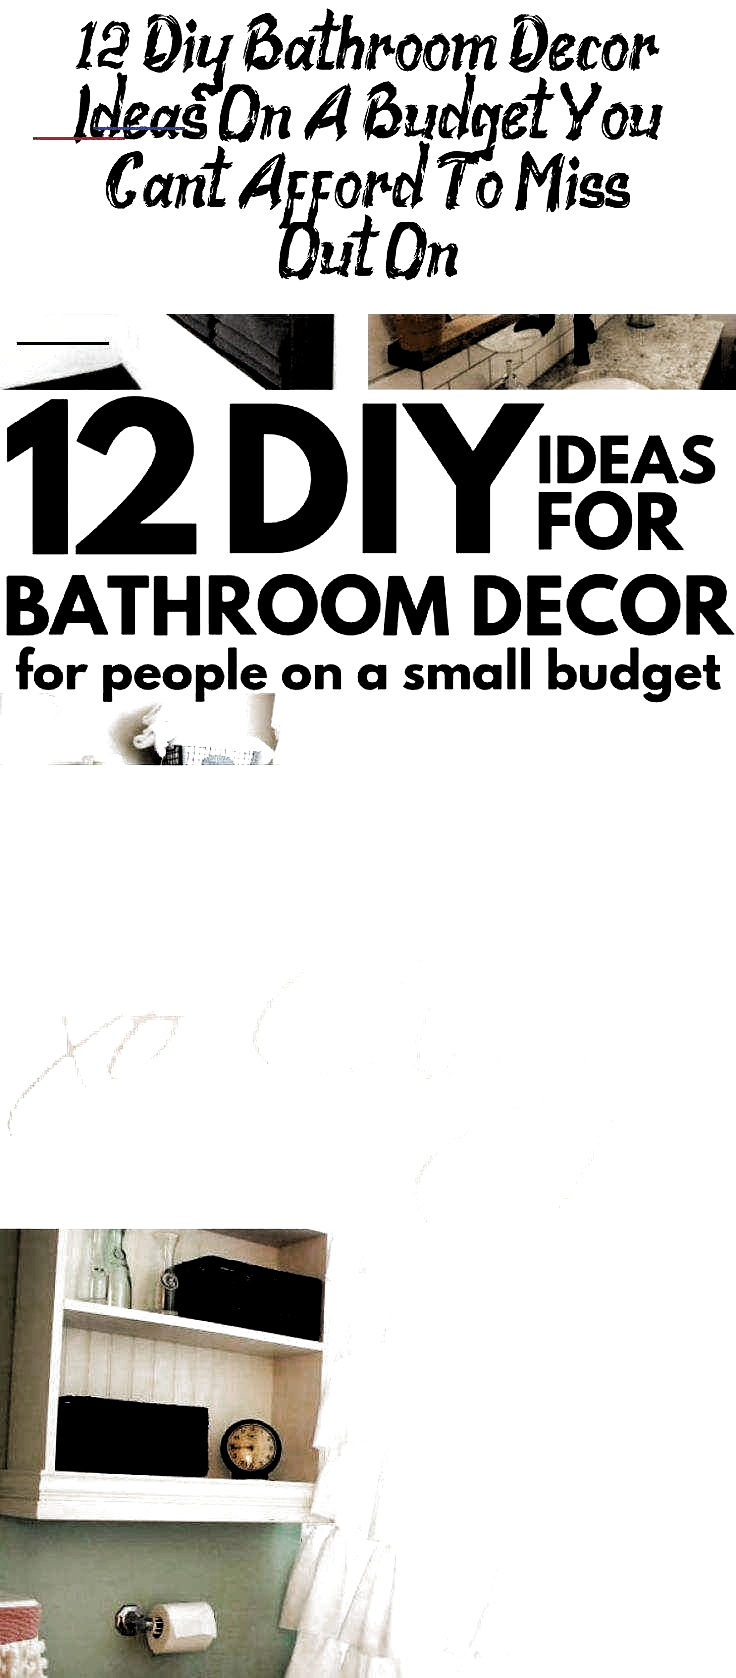 Photo of 12 Diy Bathroom Decor Ideas On A Budget You Cant Afford – Home Decor DIY Bathr…